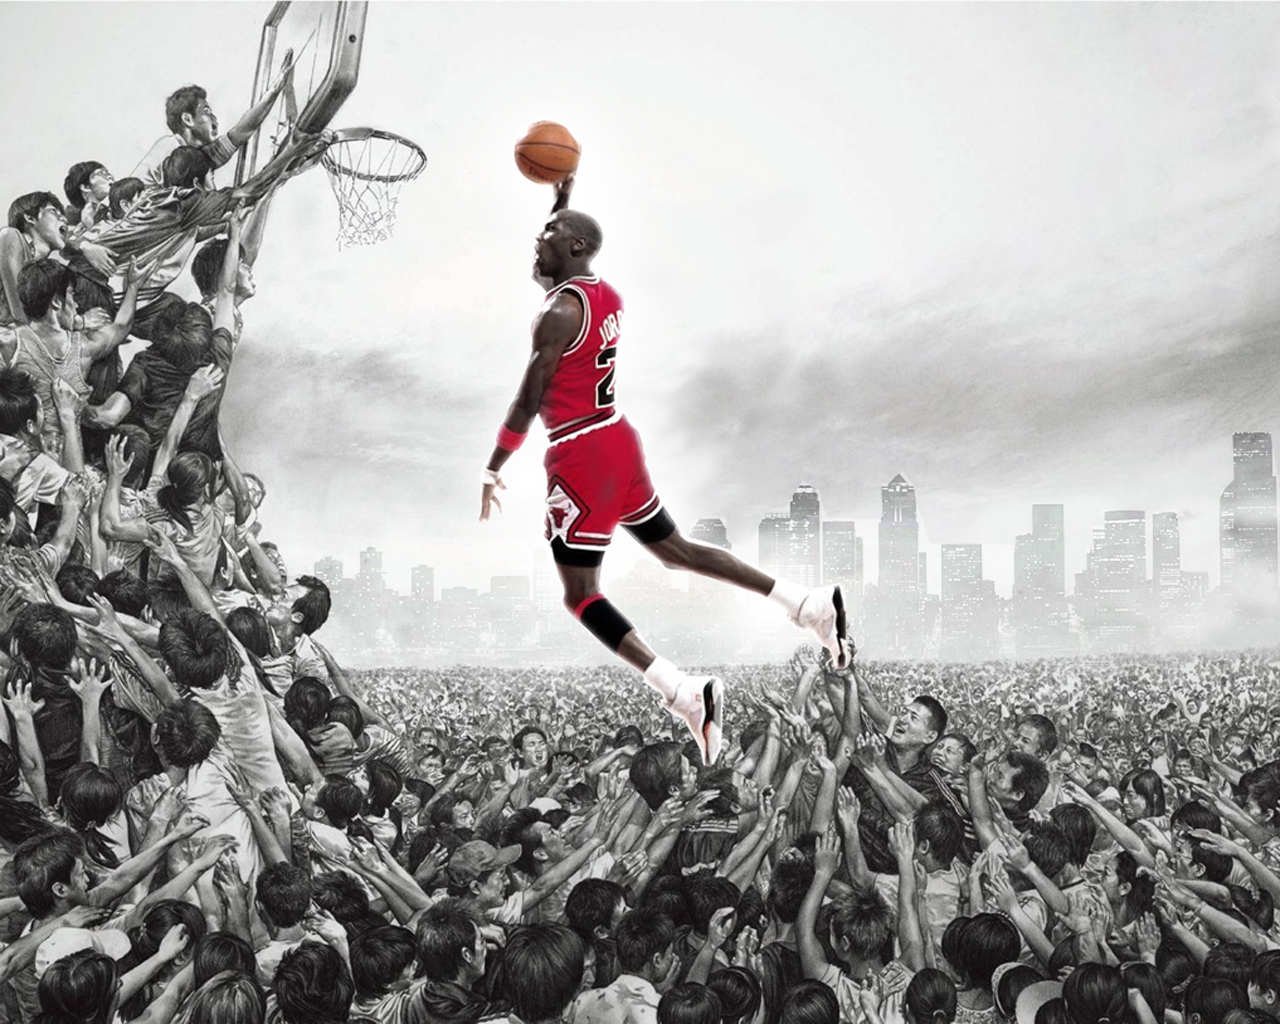 Awesome Air Jordan Wallpaper